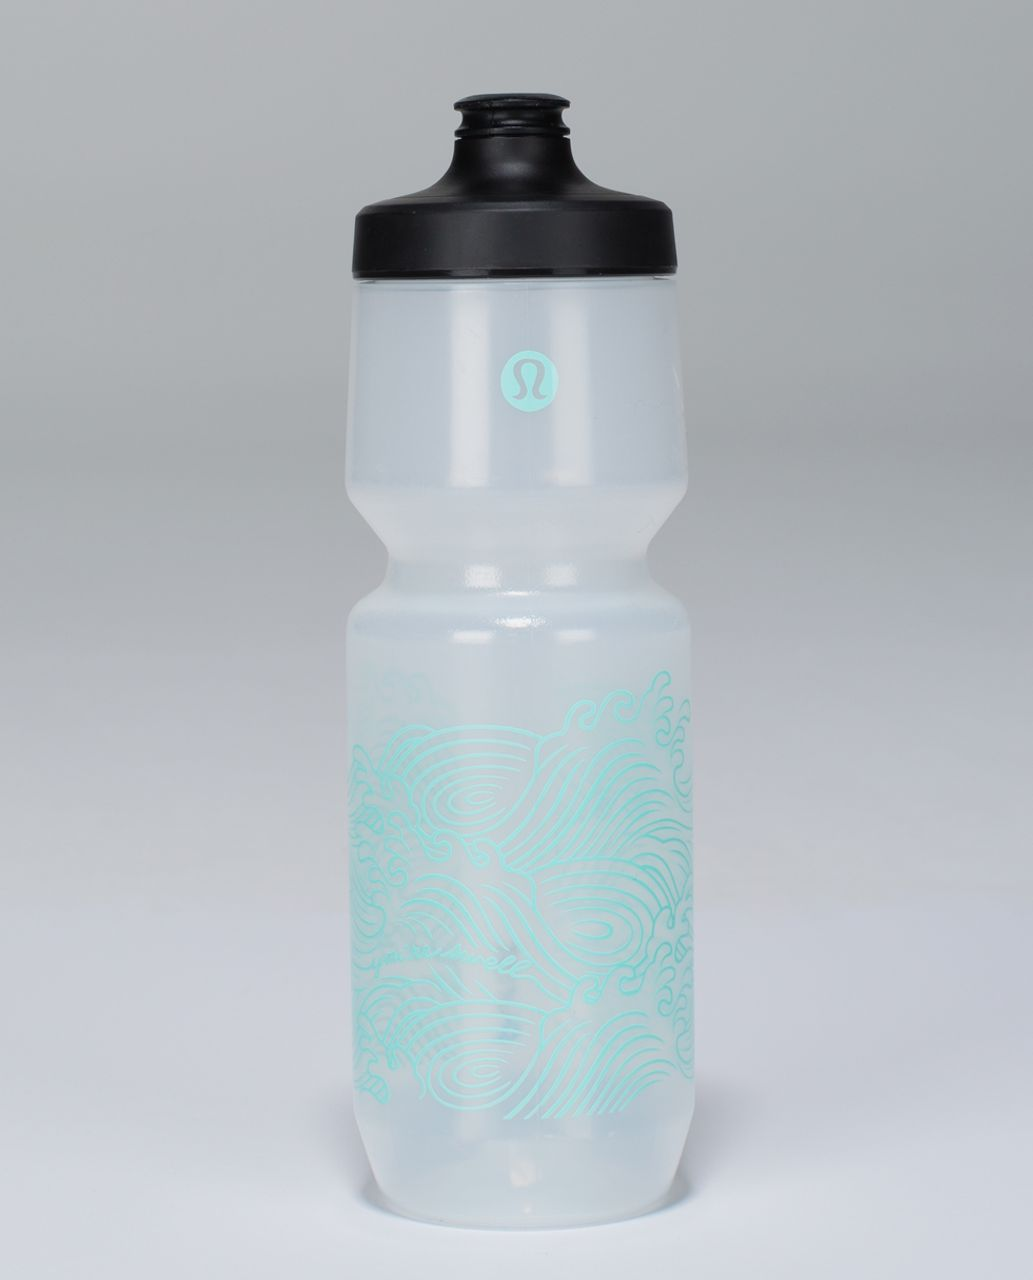 Lululemon Purist Cycling Water Bottle - You're Swell Blue